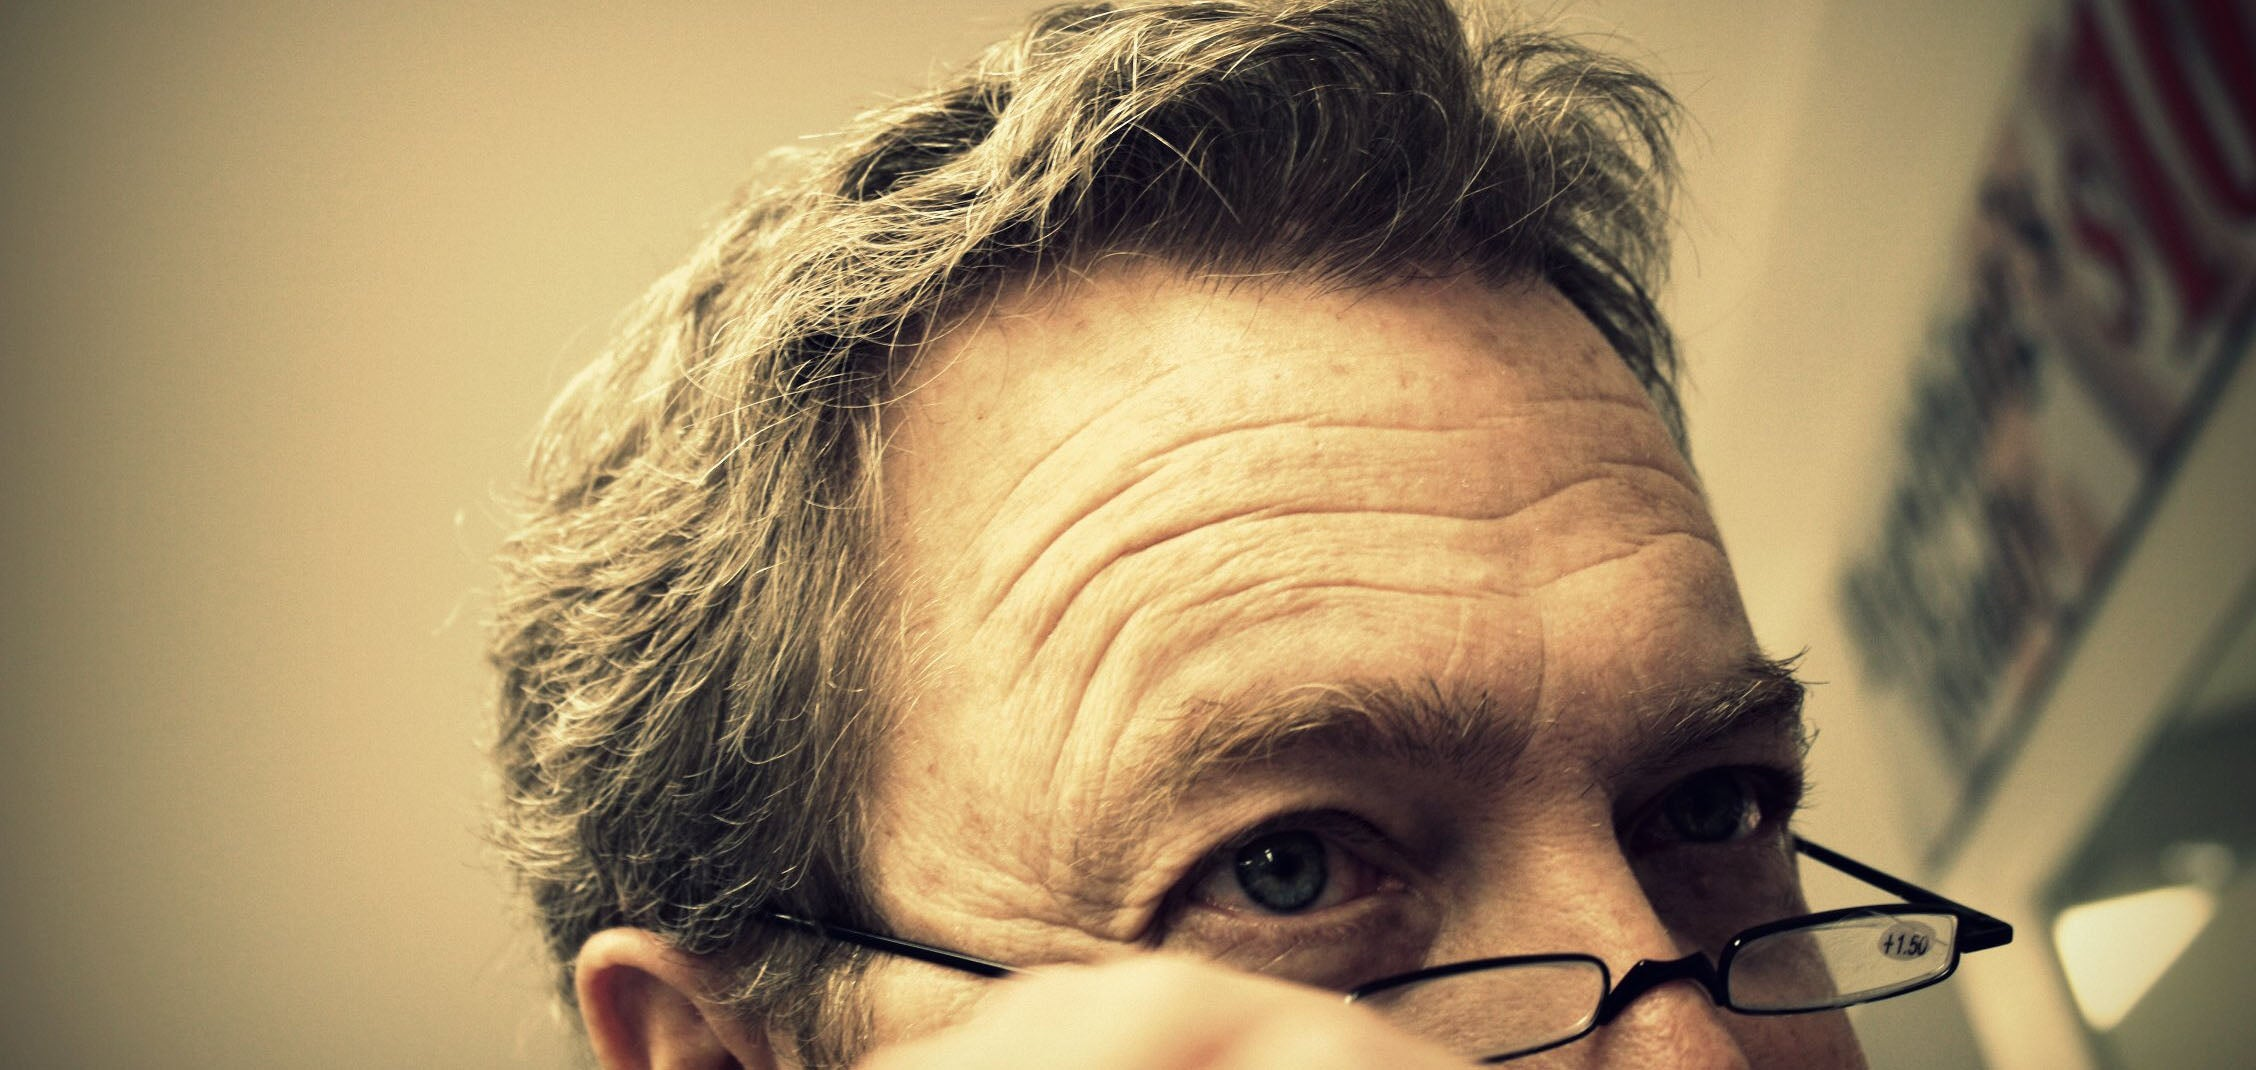 Scientists Have Discovered the First Gene Responsible for Grey Hair